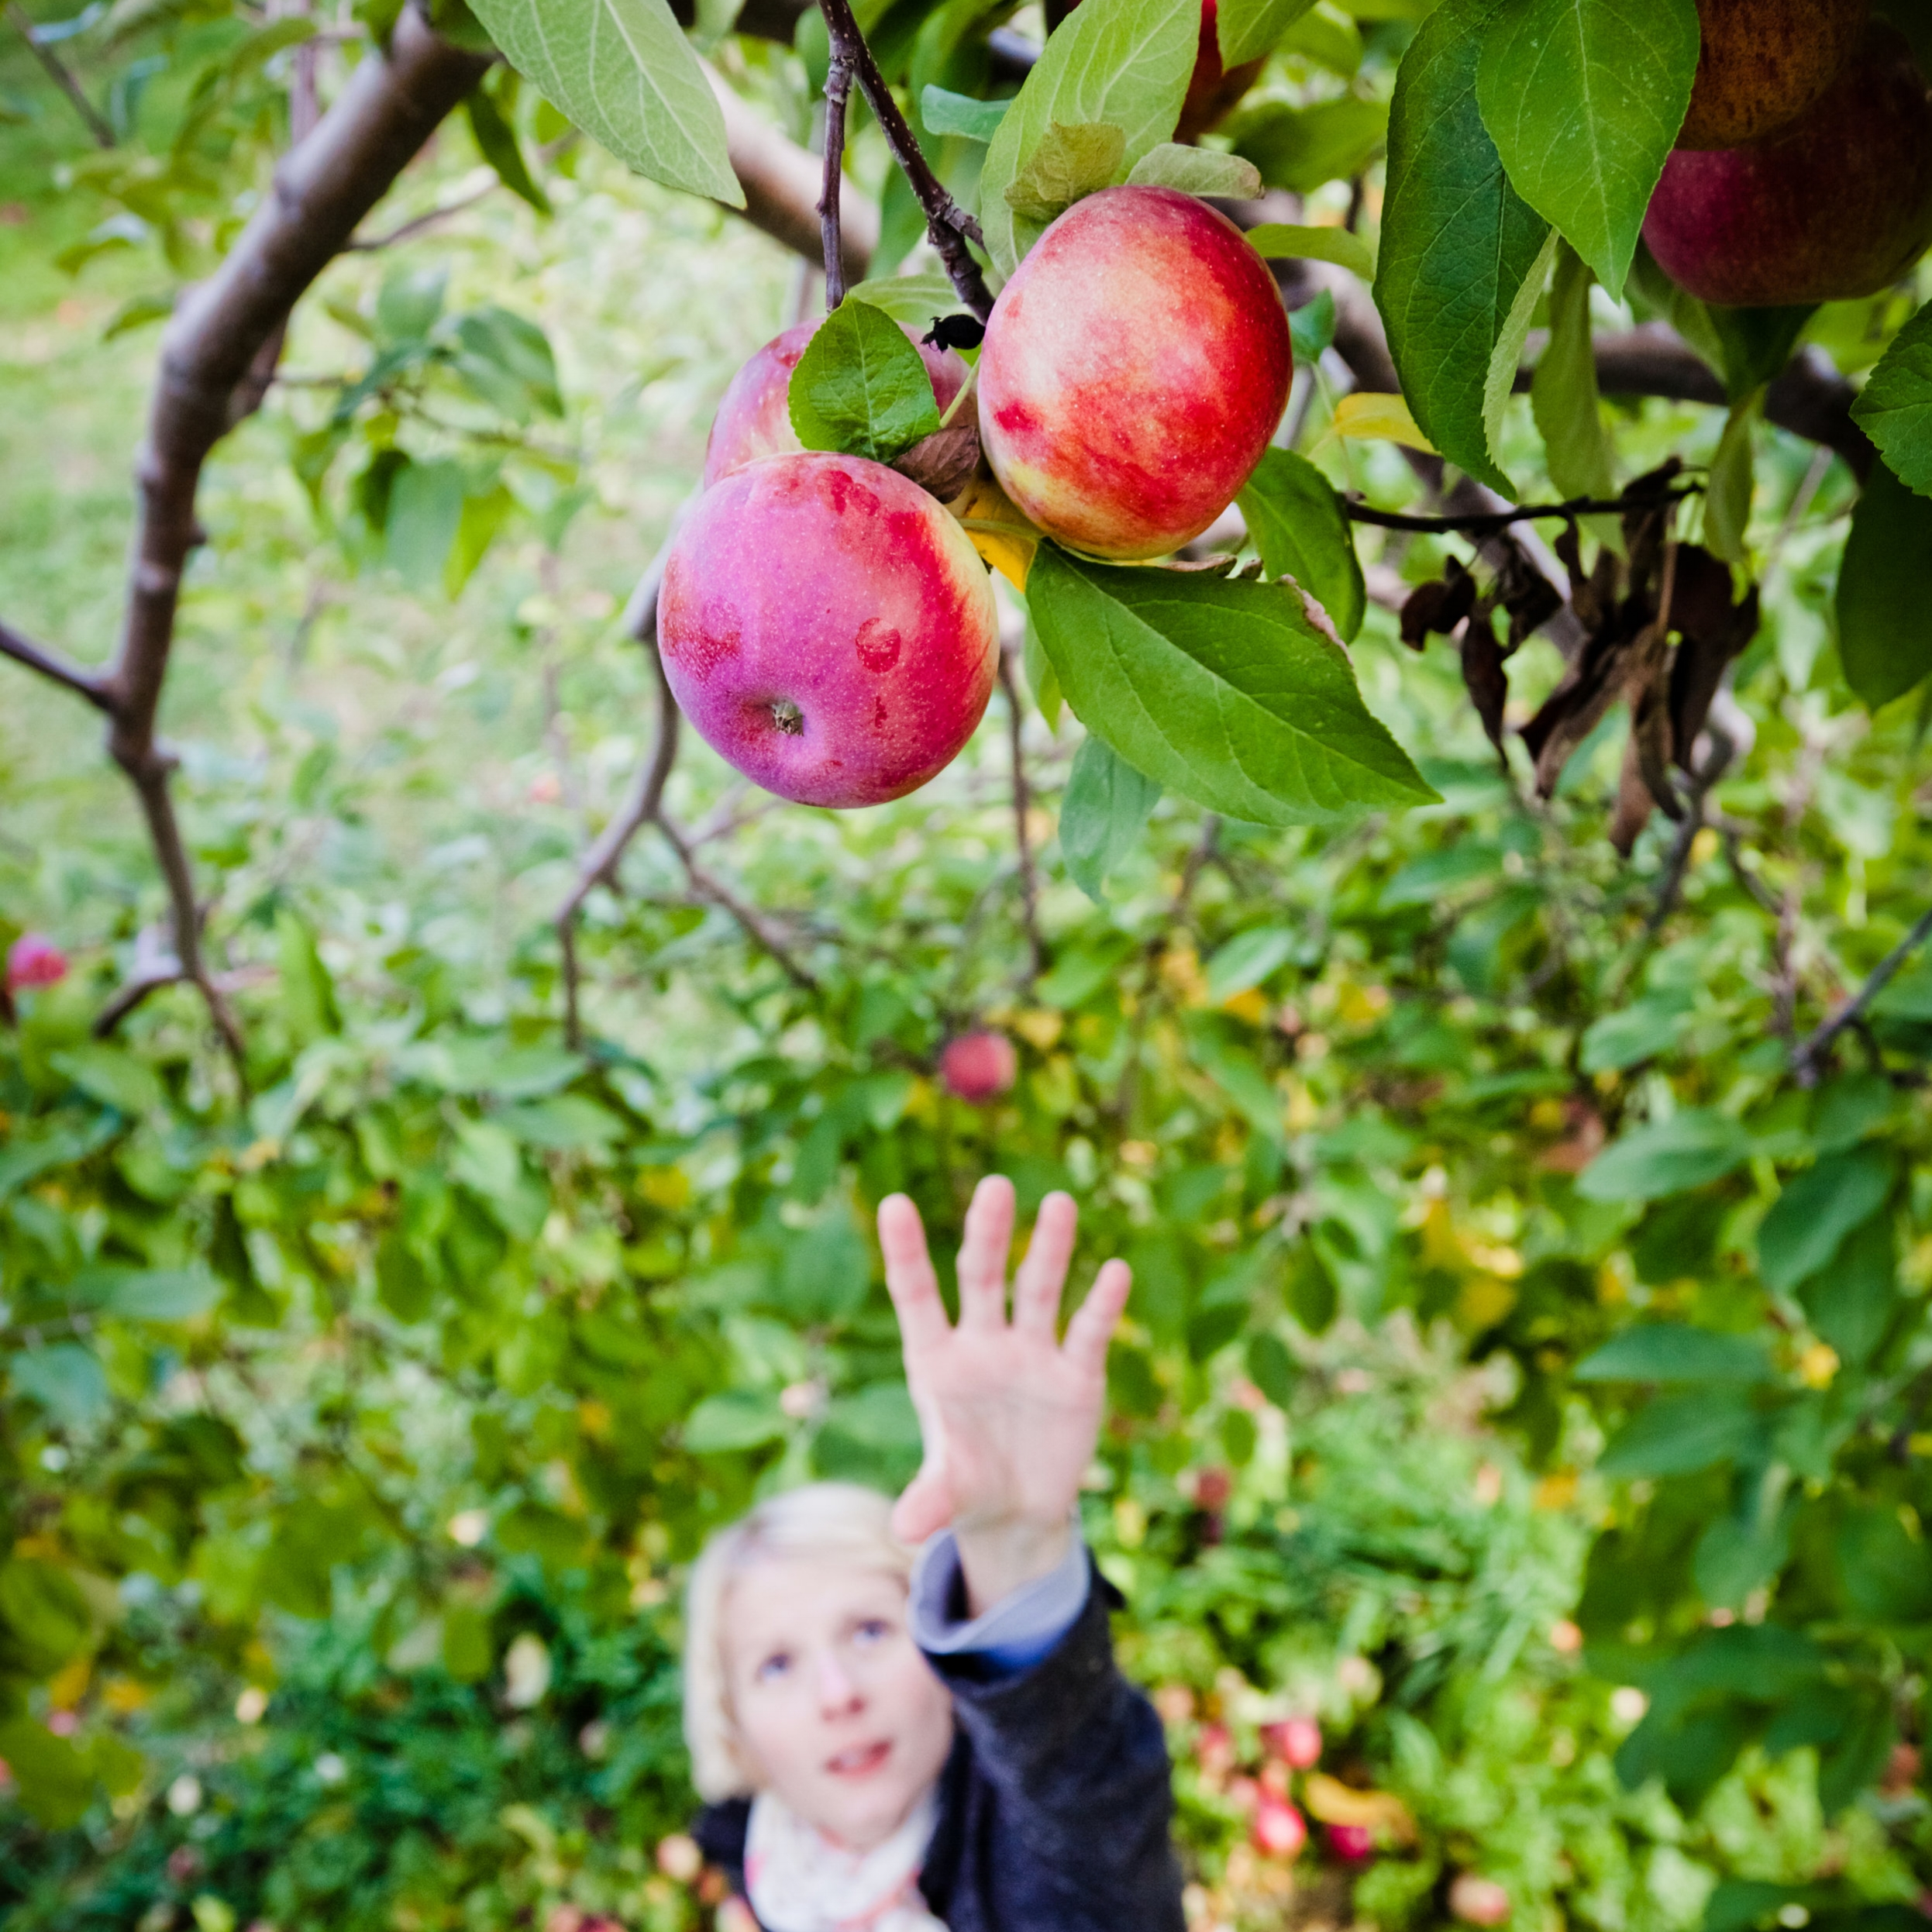 girl-reaching-for-a-branch-with-apples-PR5CAPZ.jpg